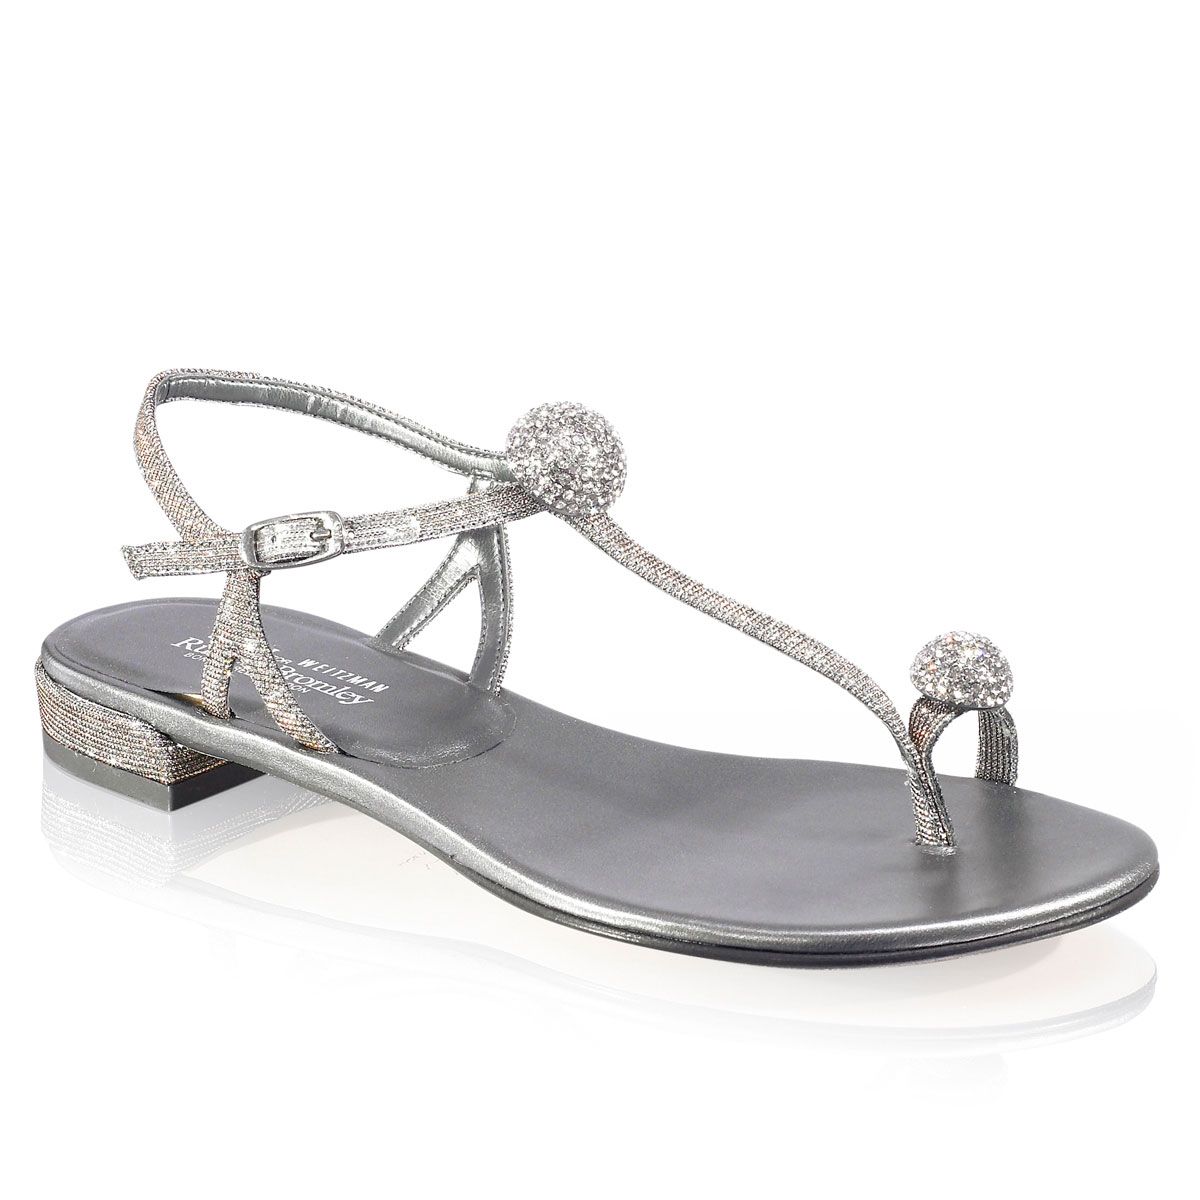 Russell And Bromley FIREBALLS Flat Jewelled Sandal